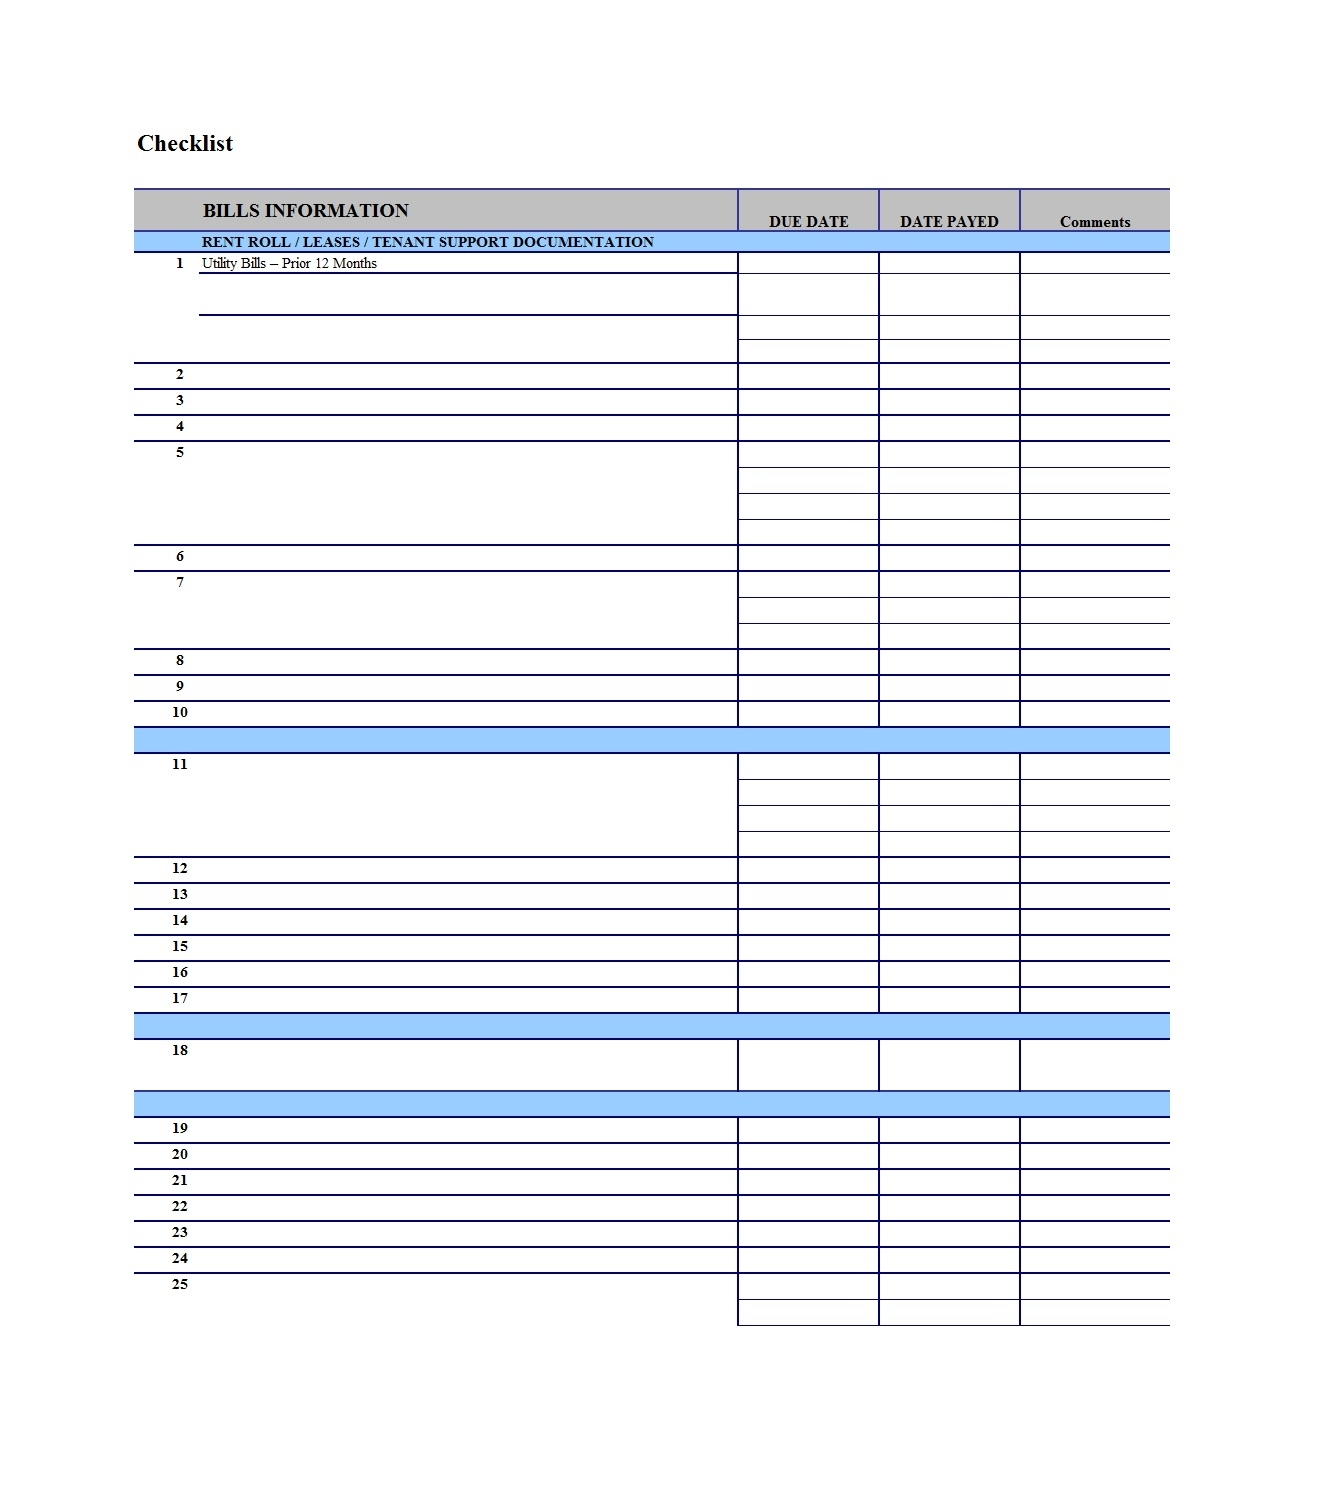 32 Free Bill Pay Checklists & Bill Calendars (Pdf, Word & Excel) for Bill Due Date Calendar Printable